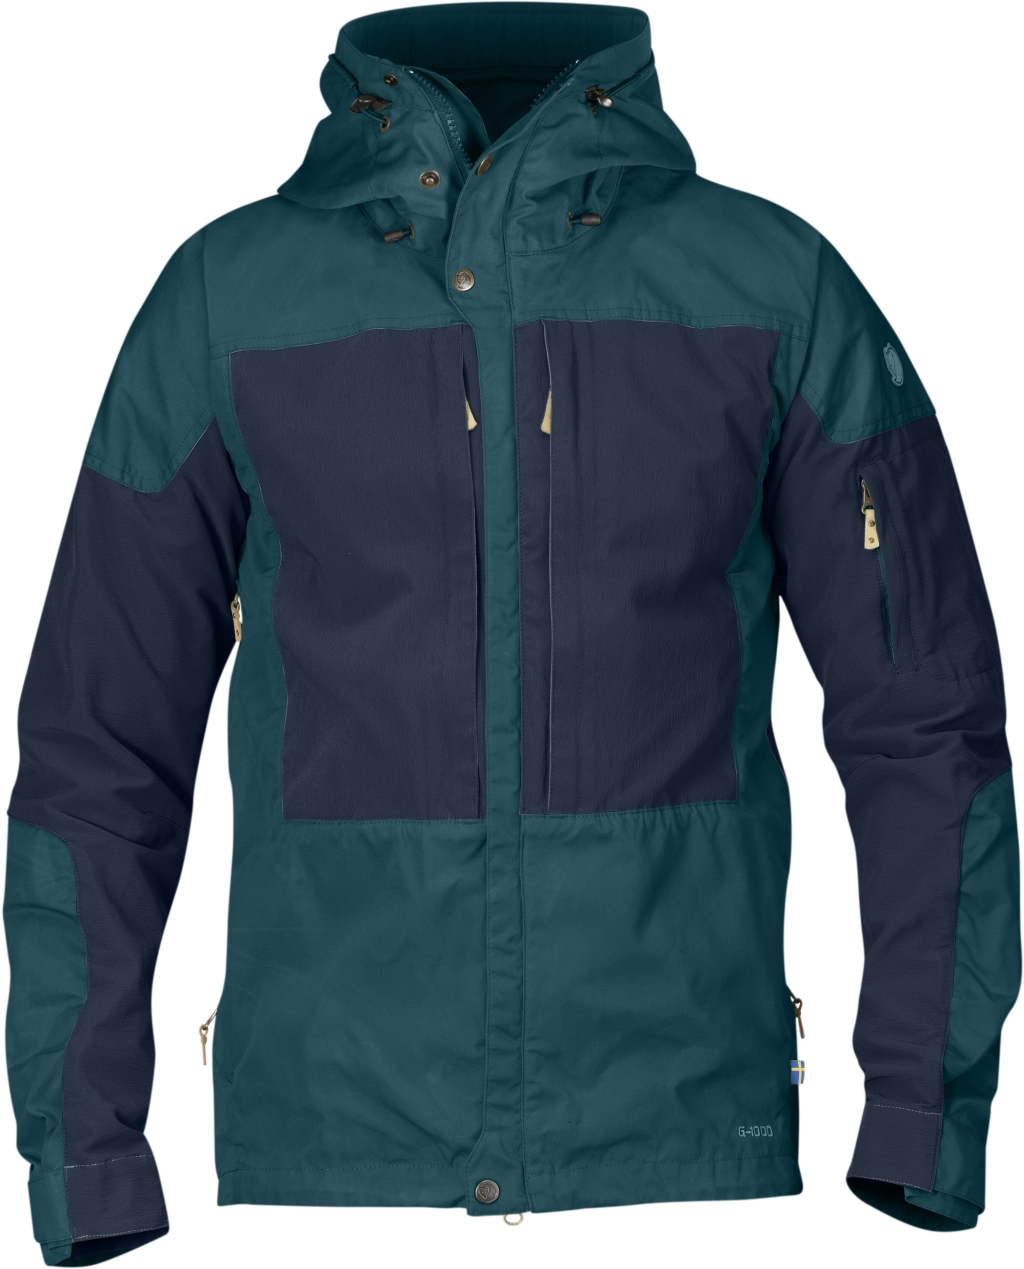 FjallRaven Keb Jacket Glacier Green-Dark Navy-30